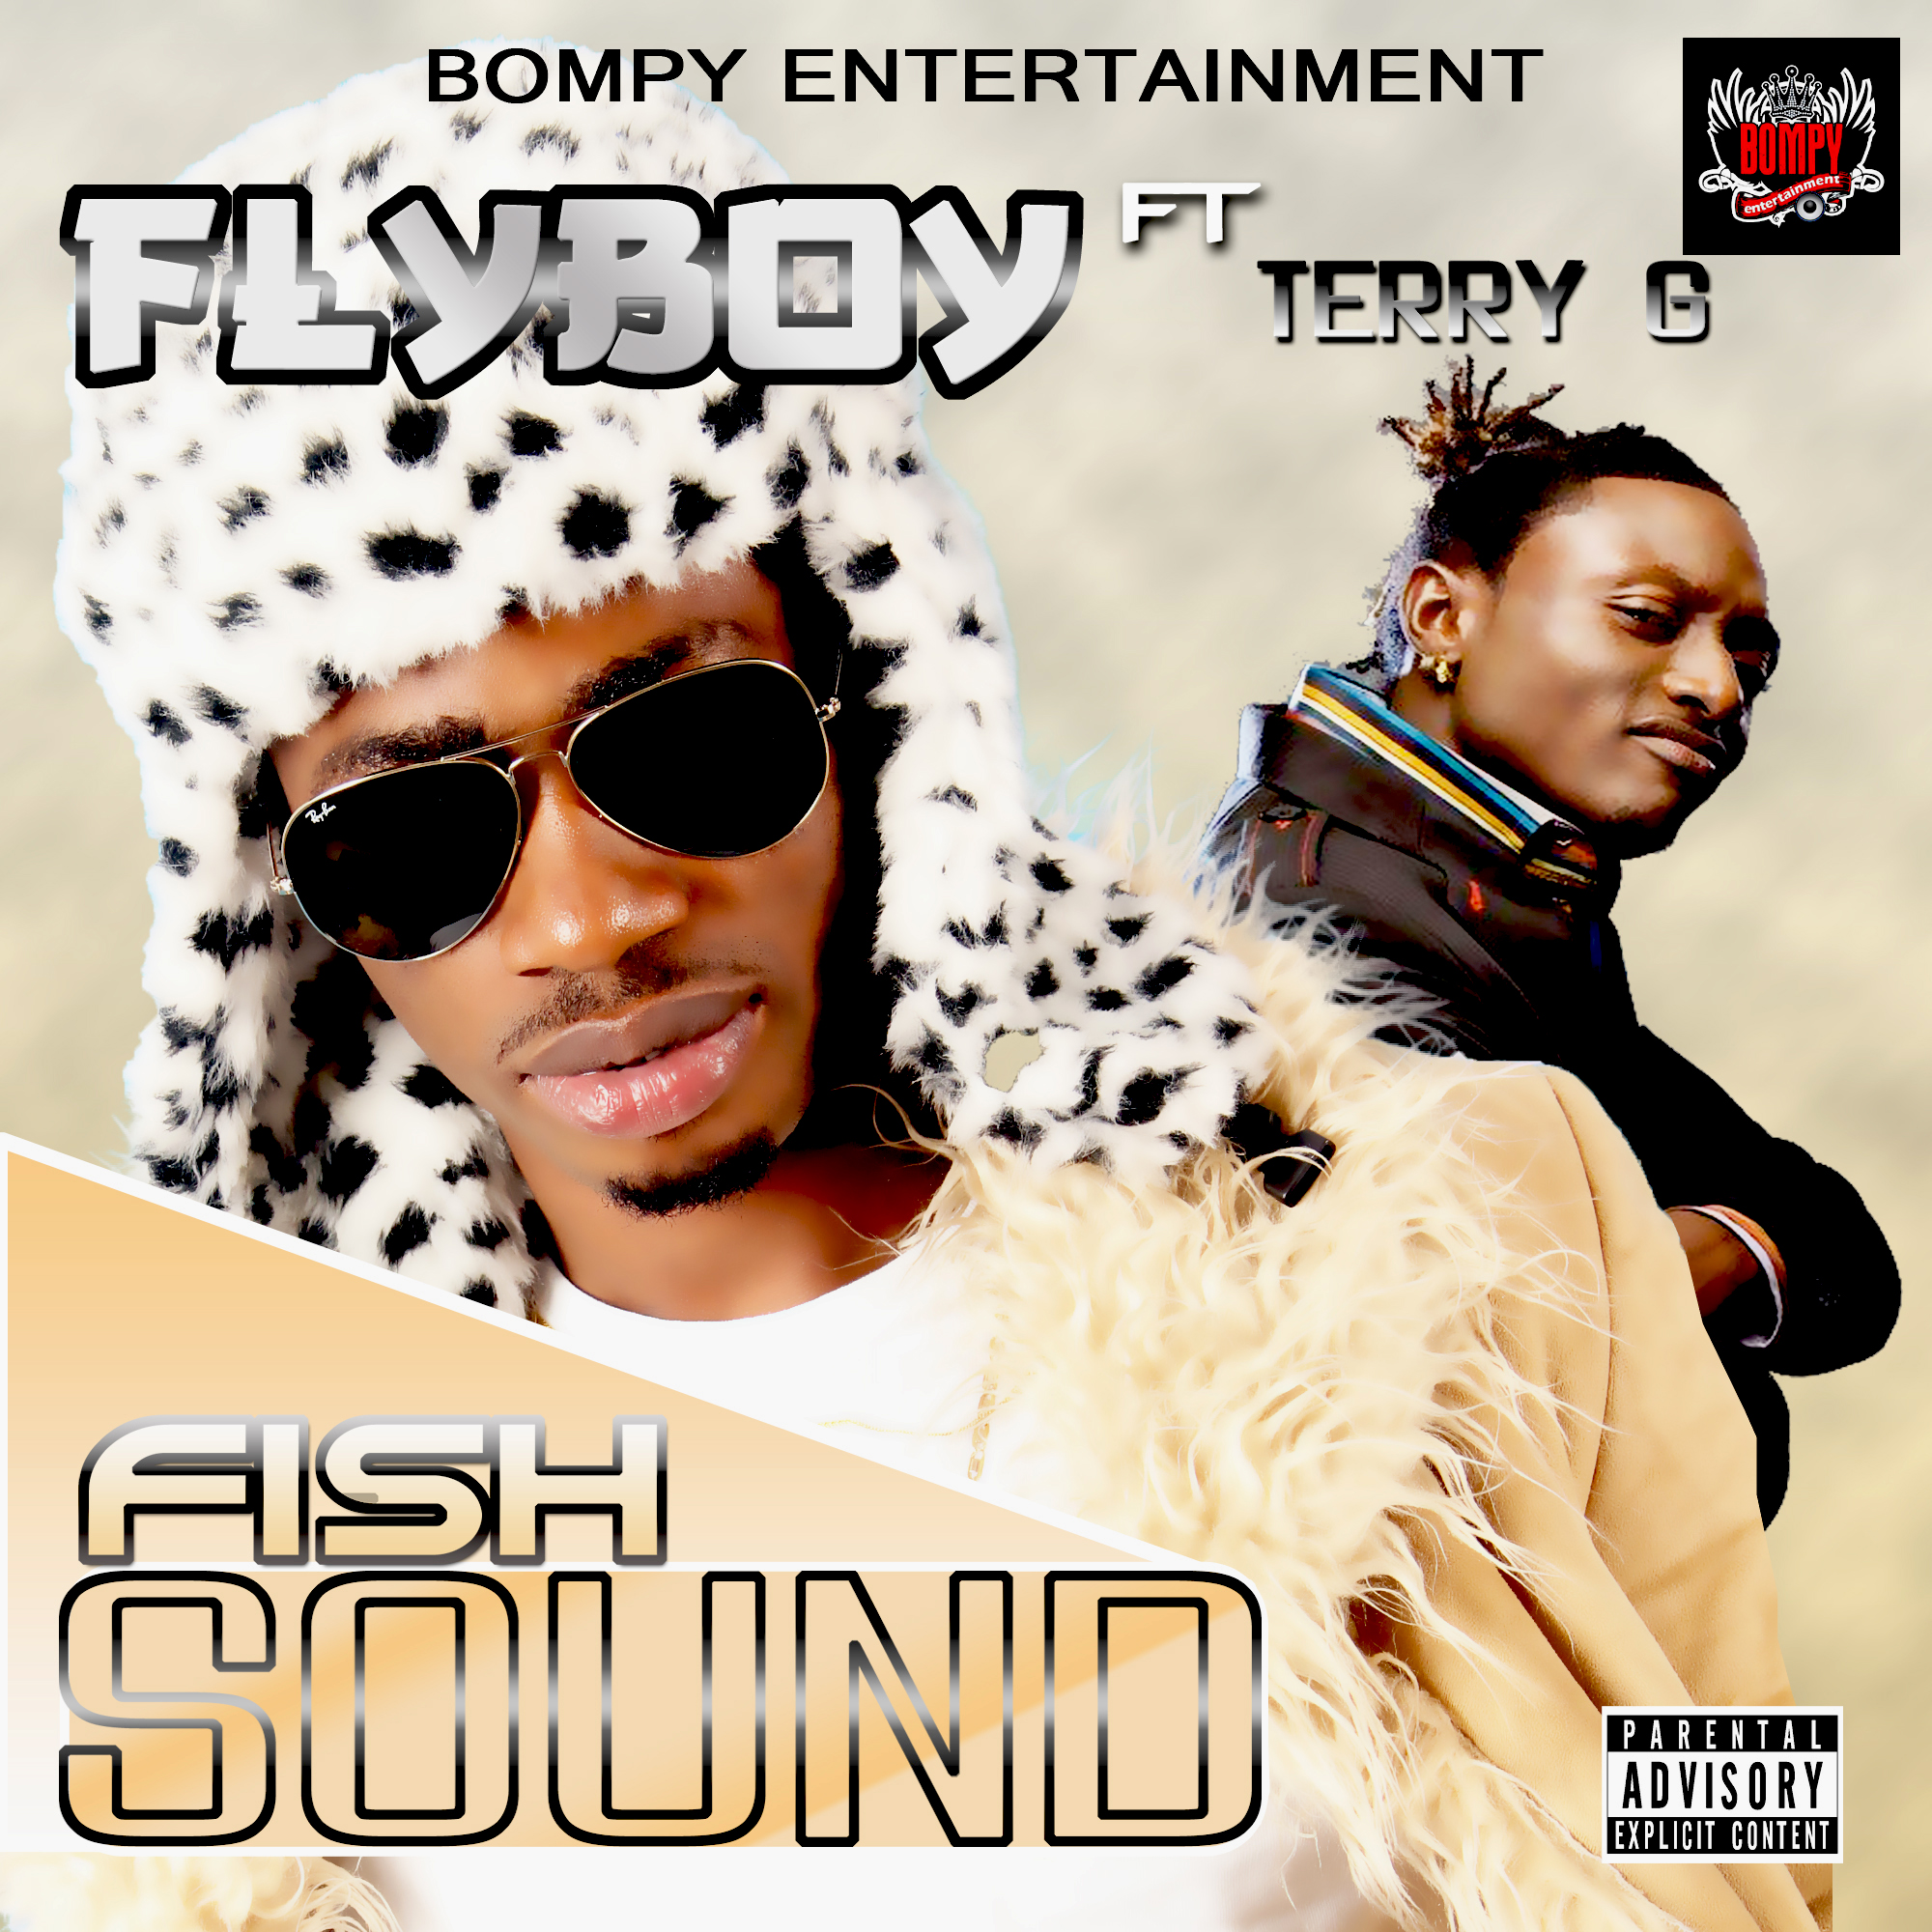 Fly-Boy_Fish_Sound pictures